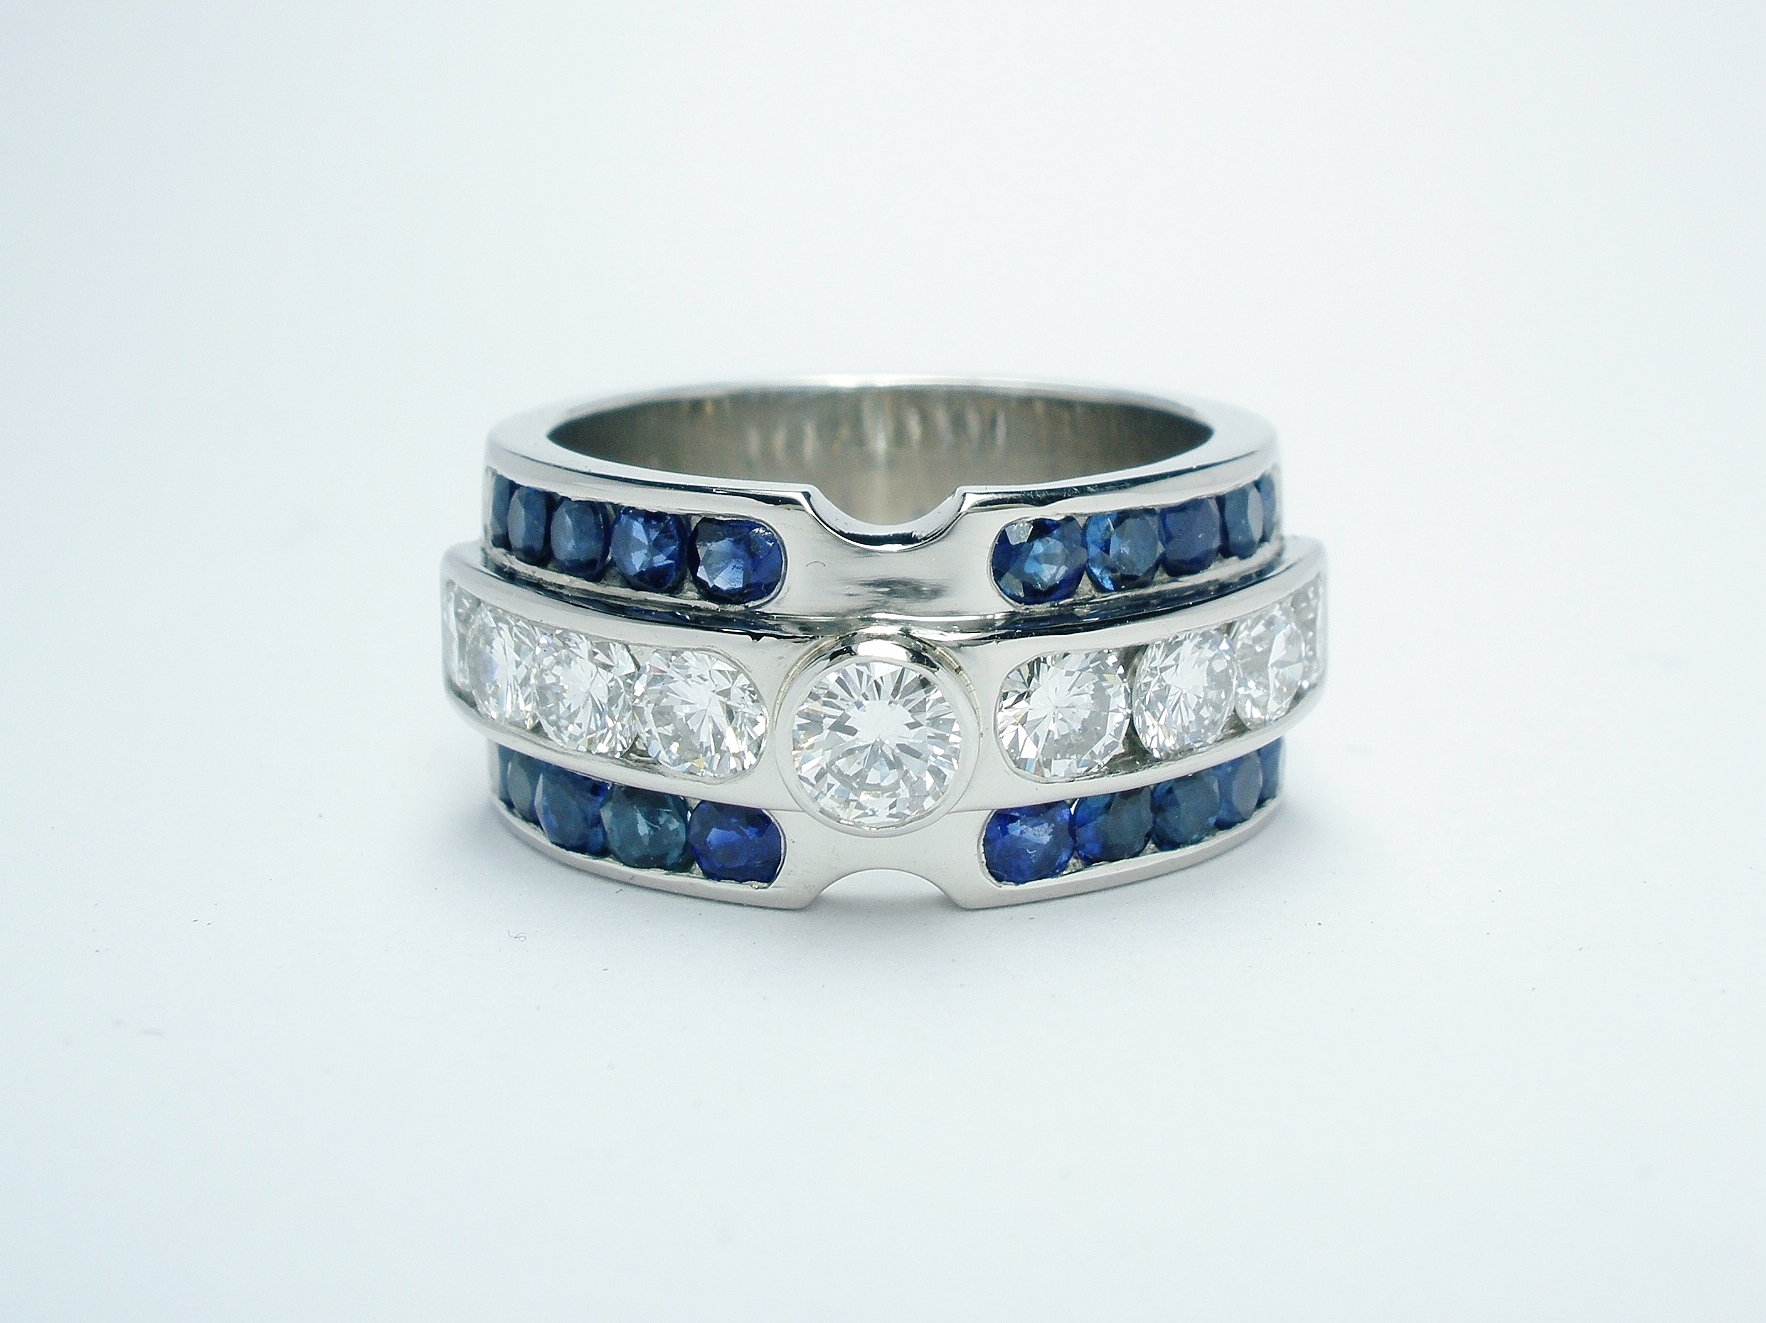 Brilliant cut diamond and round sapphire triple channel set ring mounted in palladium & platinum.